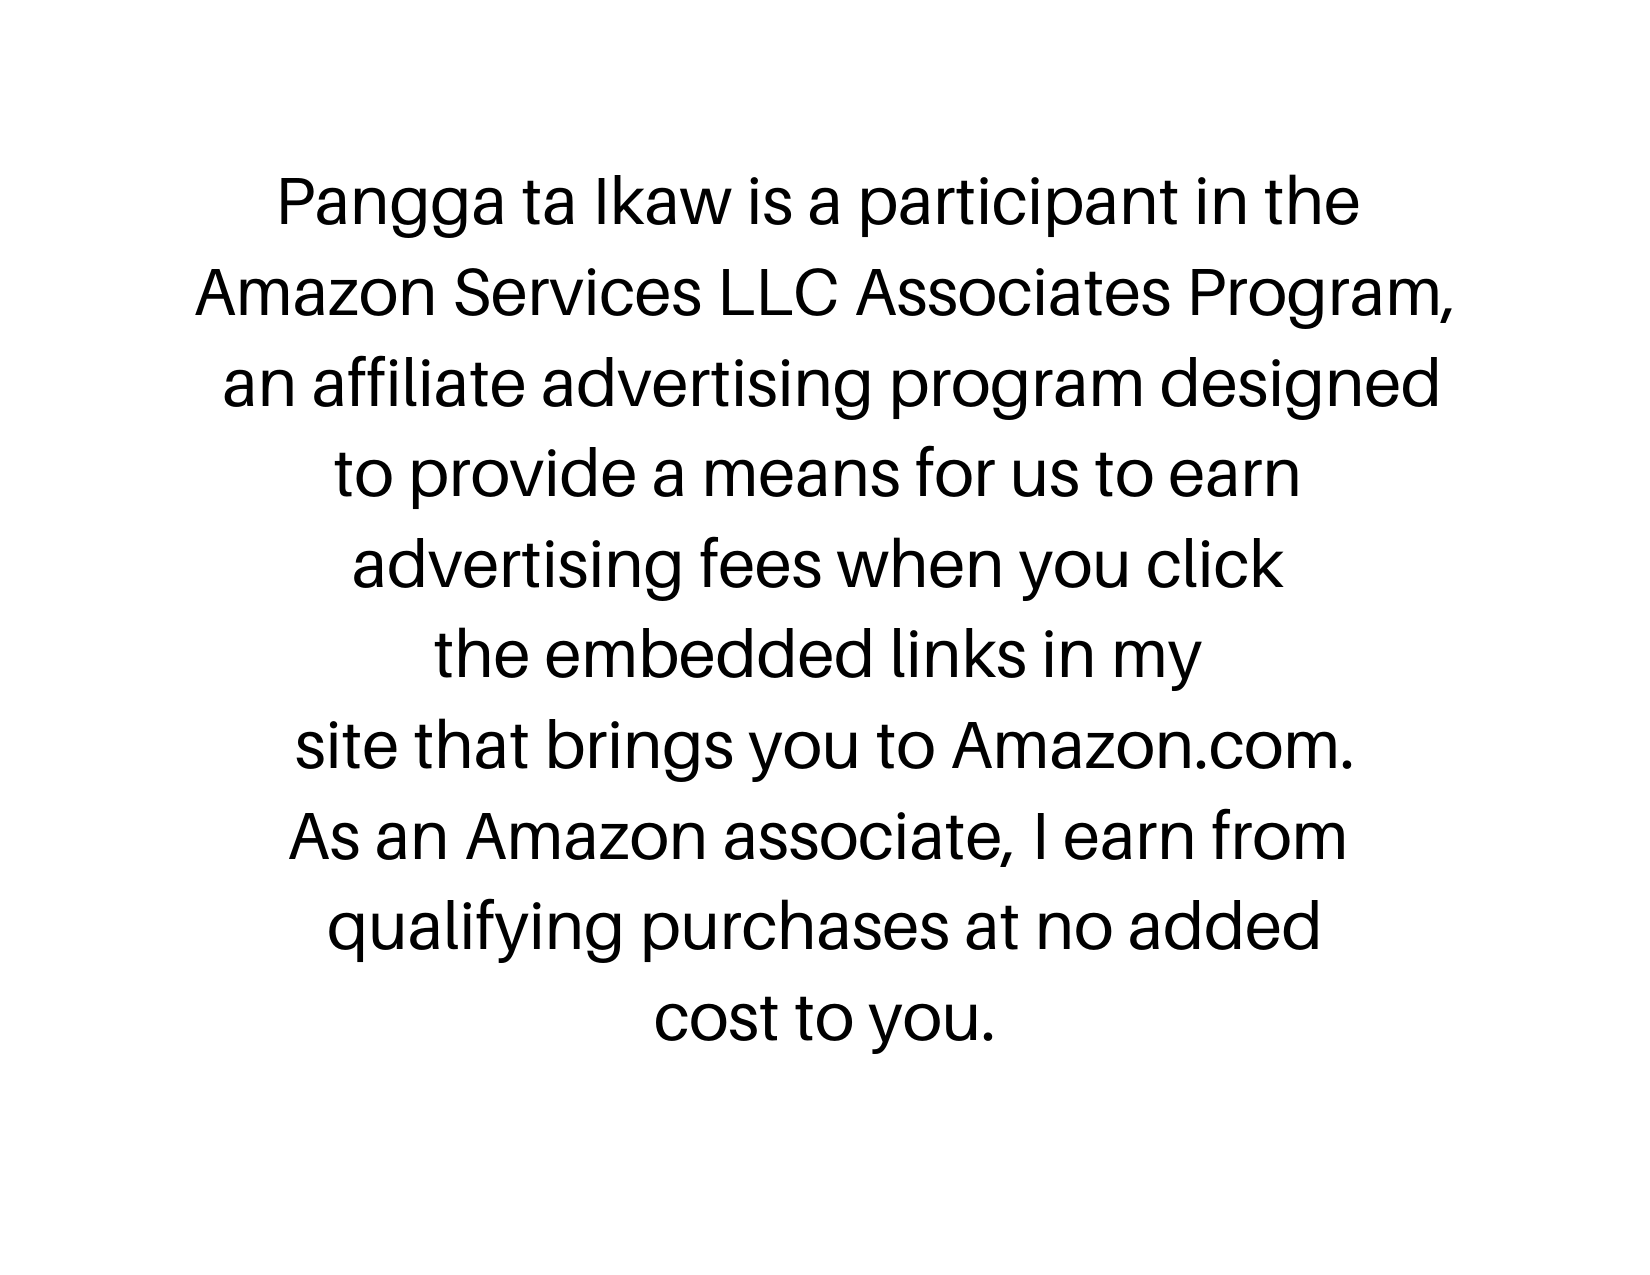 Amazon Associates Program Disclosure, Pangga ta Ikaw